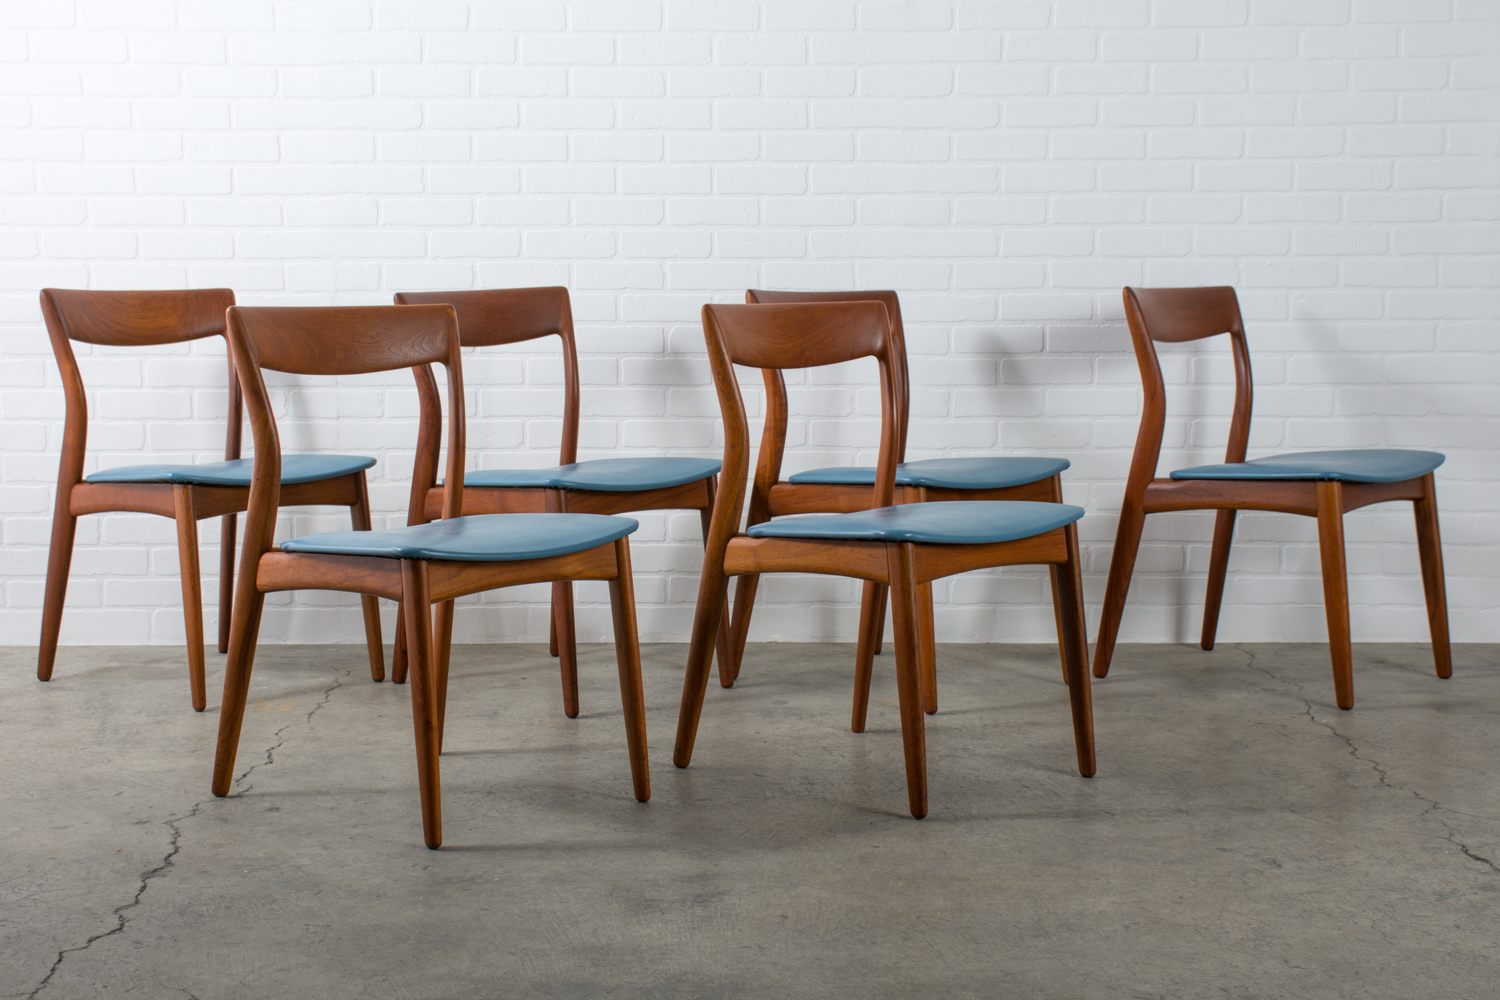 Picture of: Six Mid Century Modern Teak Dining Chairs By Viborg Stolefabrik Denmark Mid Century Modern Finds